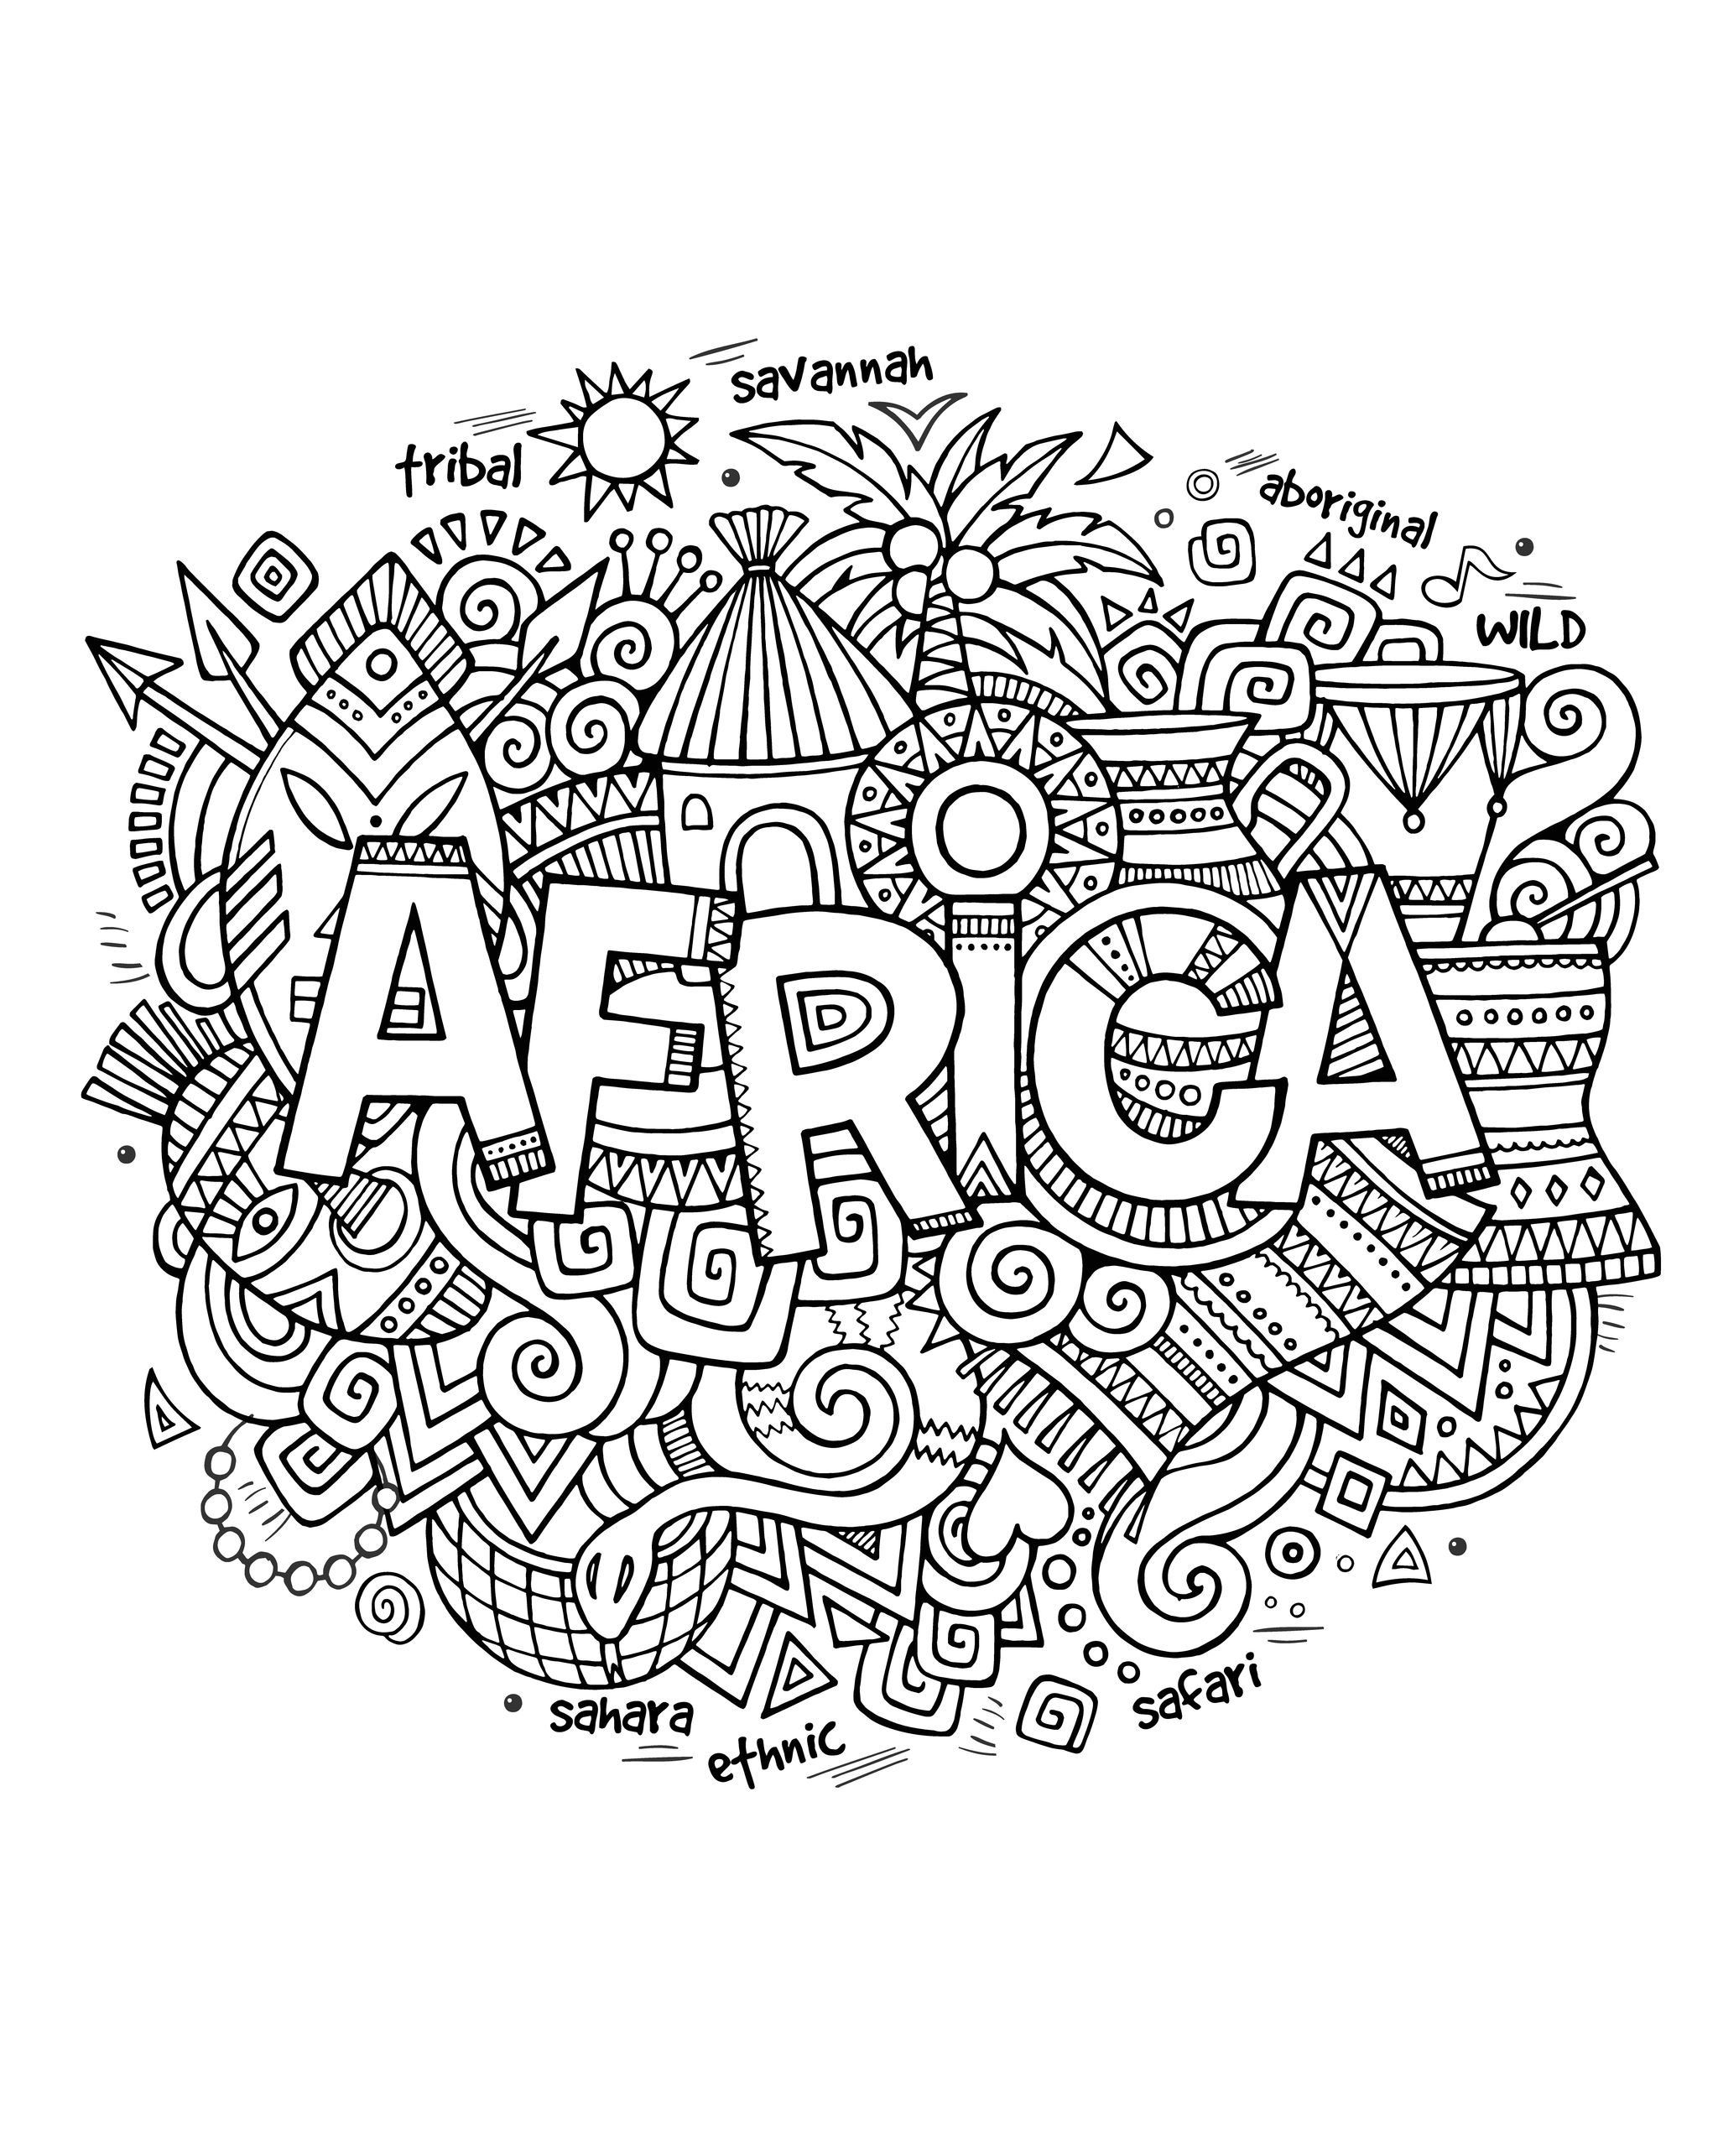 Free Coloring Page Coloring Adult Africa Abstract Symbols Drawing With The Word Africa And A